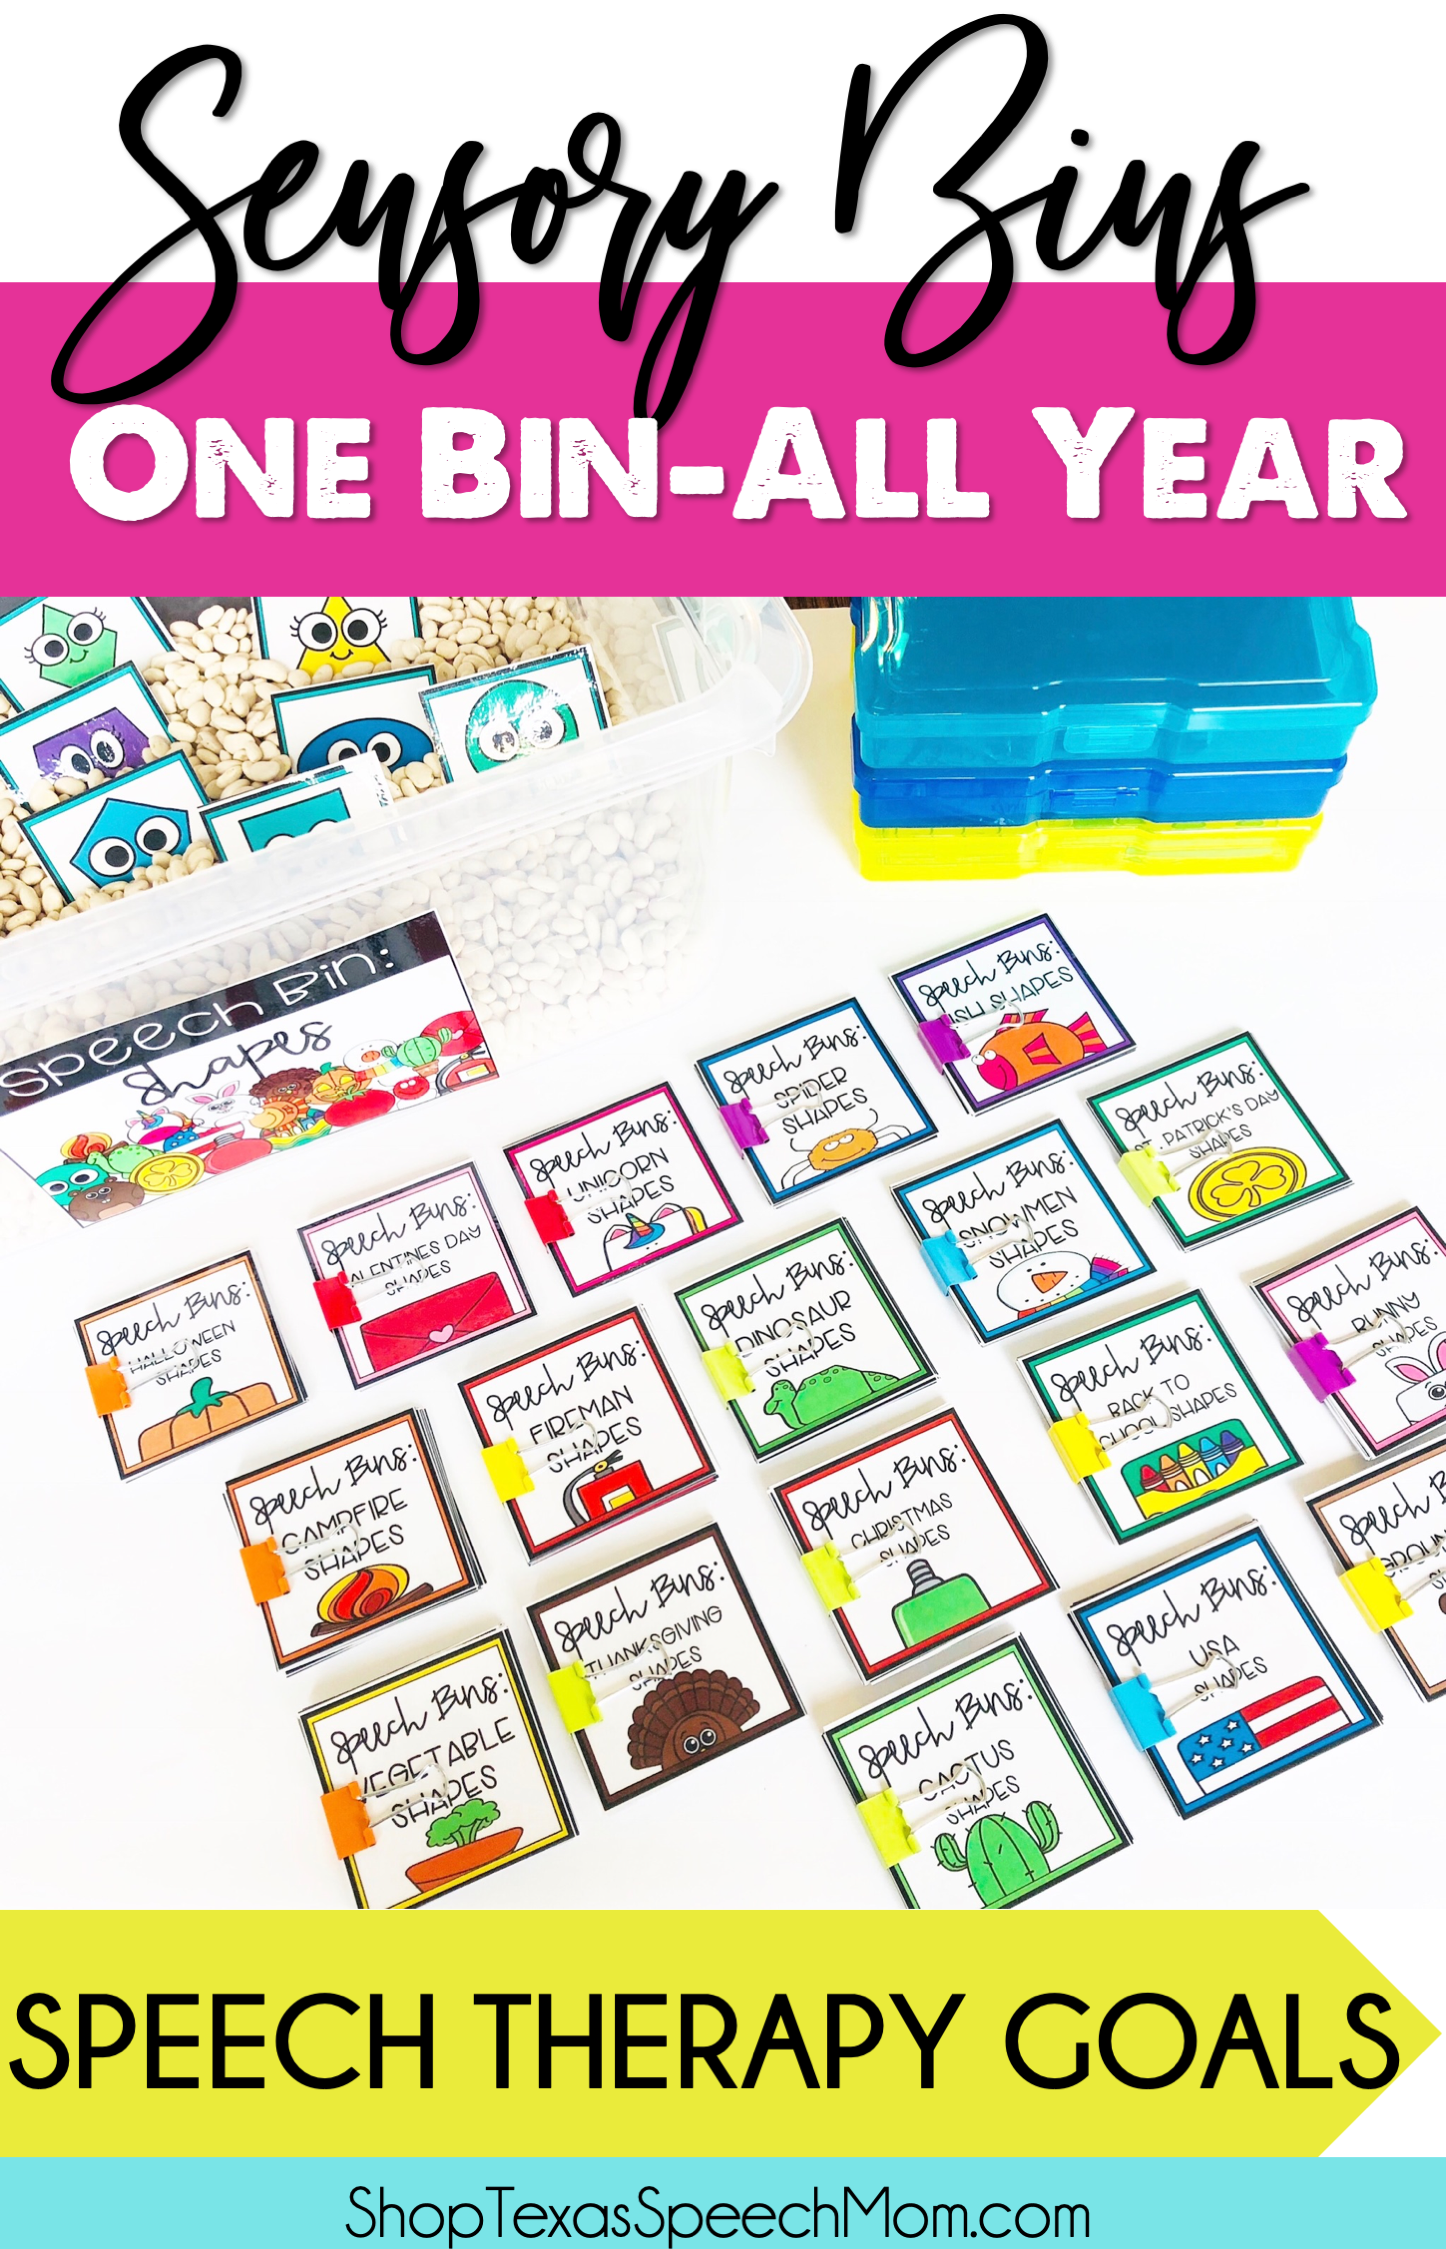 How To Use One Sensory Bin All Year For Speech Therapy